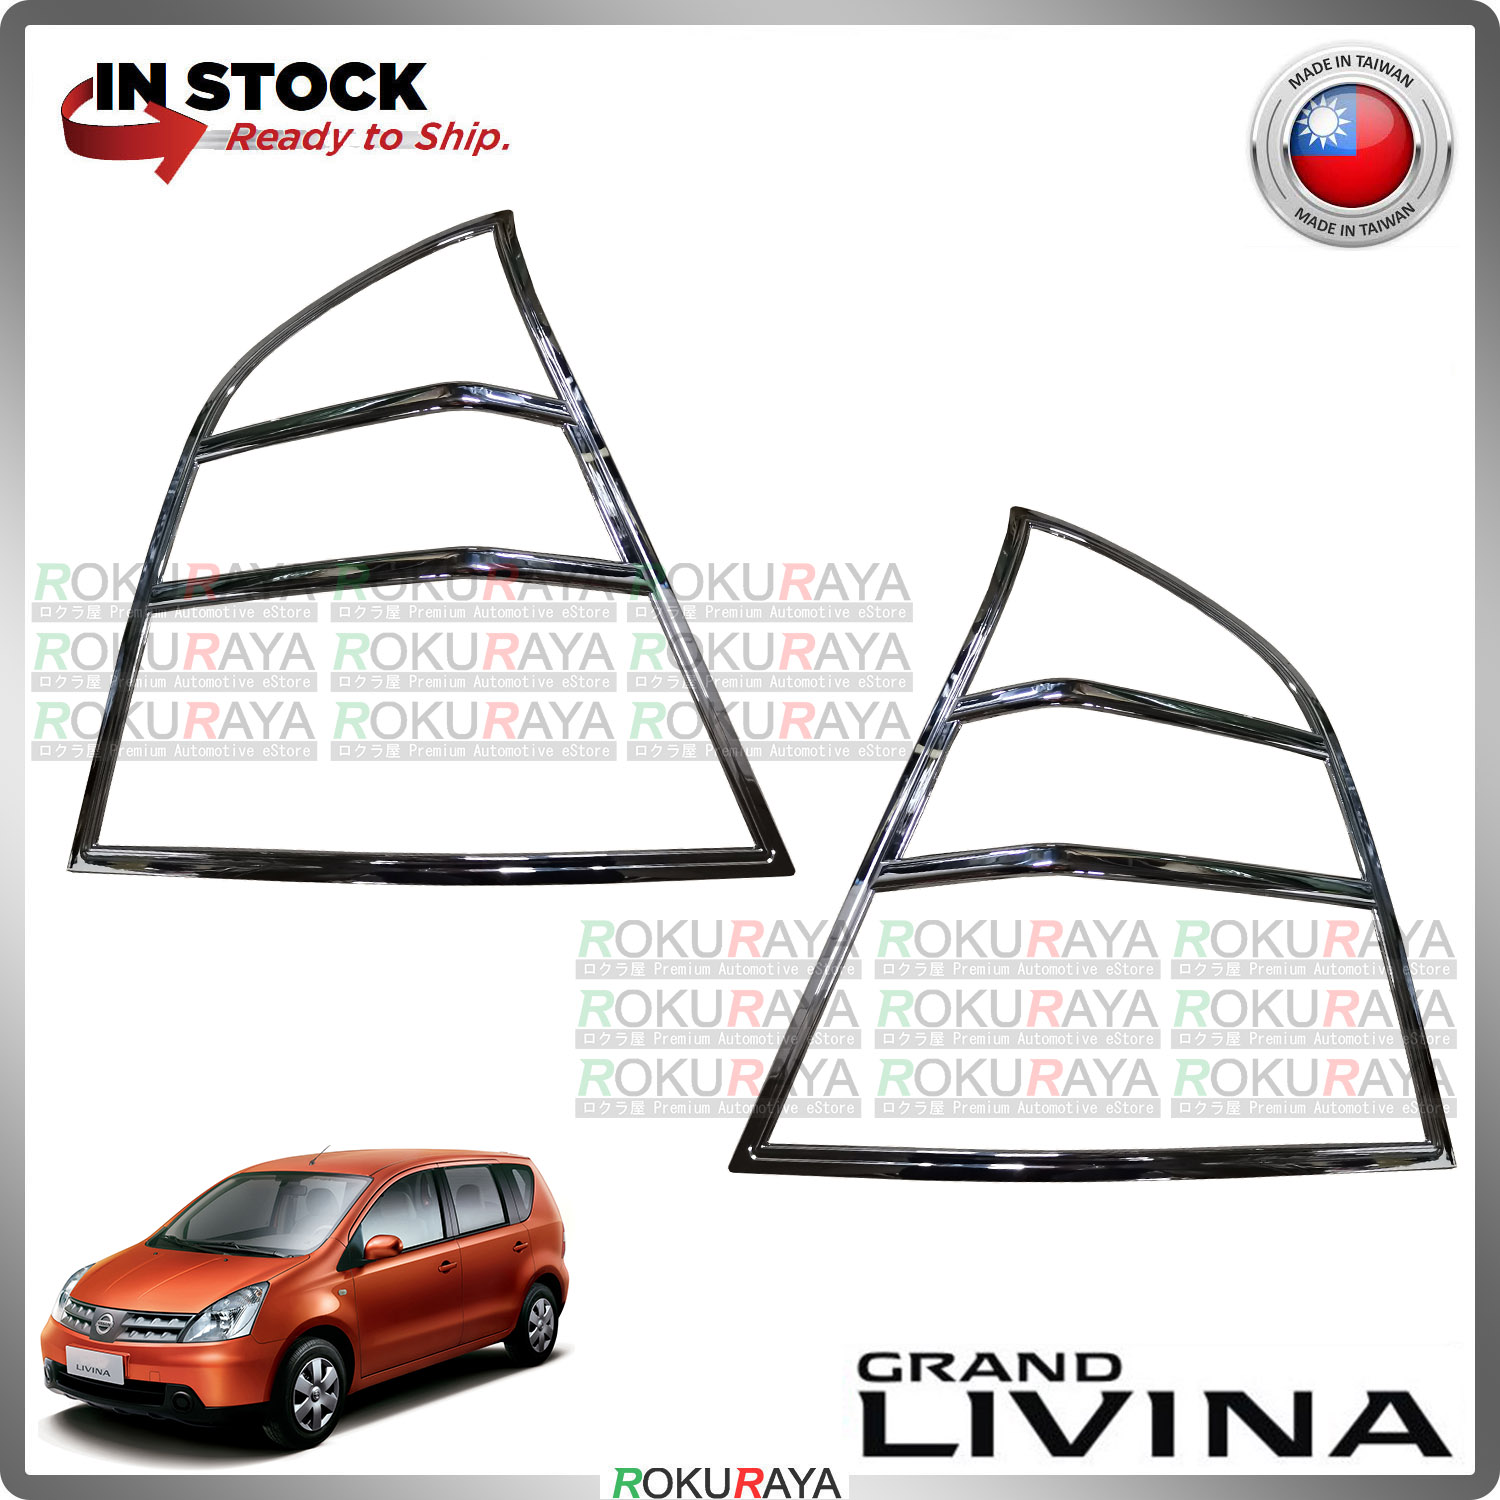 [CHROME] Nissan Livina Old 2006-2011 ABS Plastic Rear Tail Lamp Garnish Moulding Cover Trim Car Accessories Parts